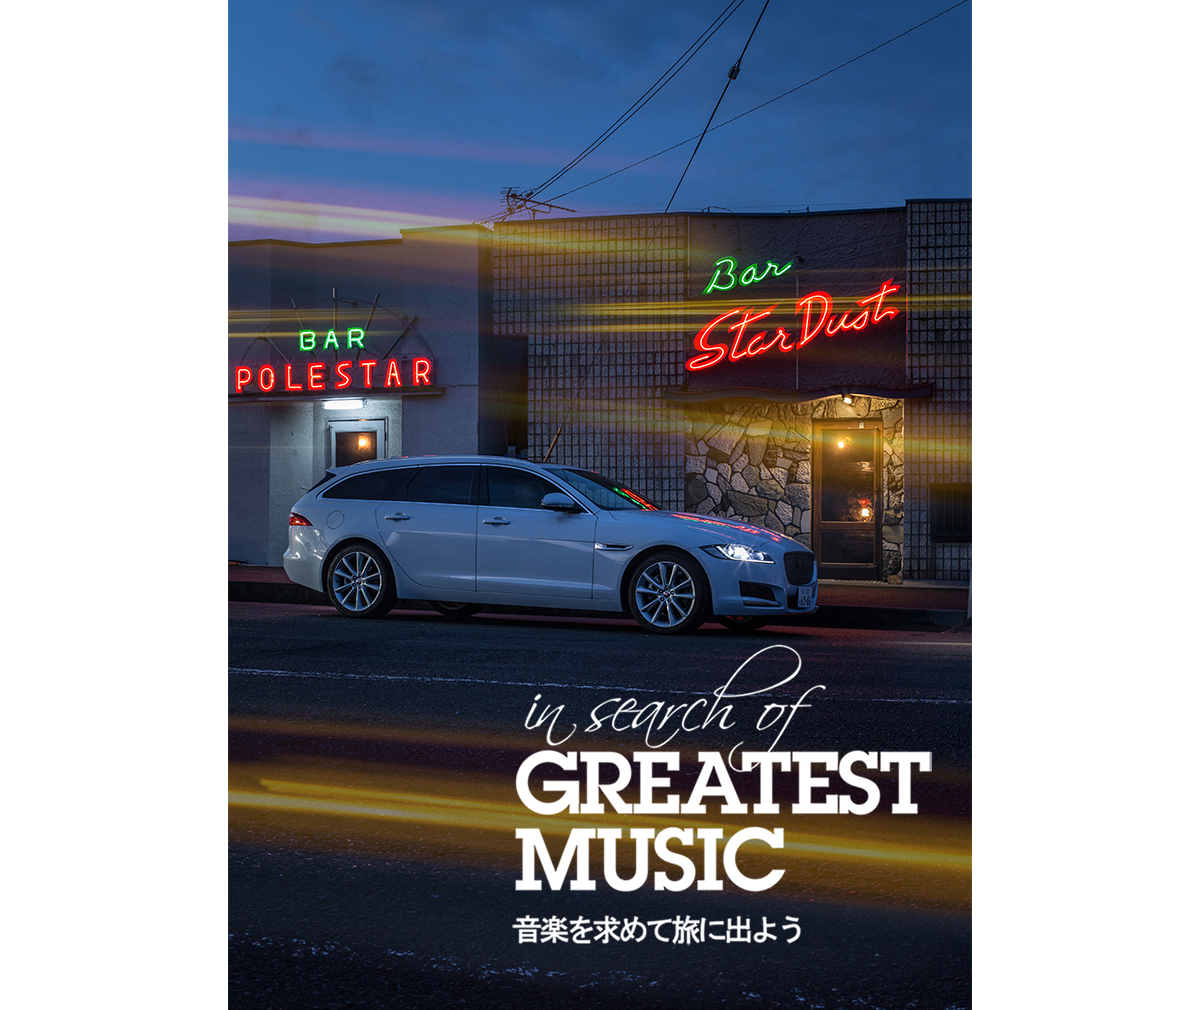 in search of GREATEST MUSIC